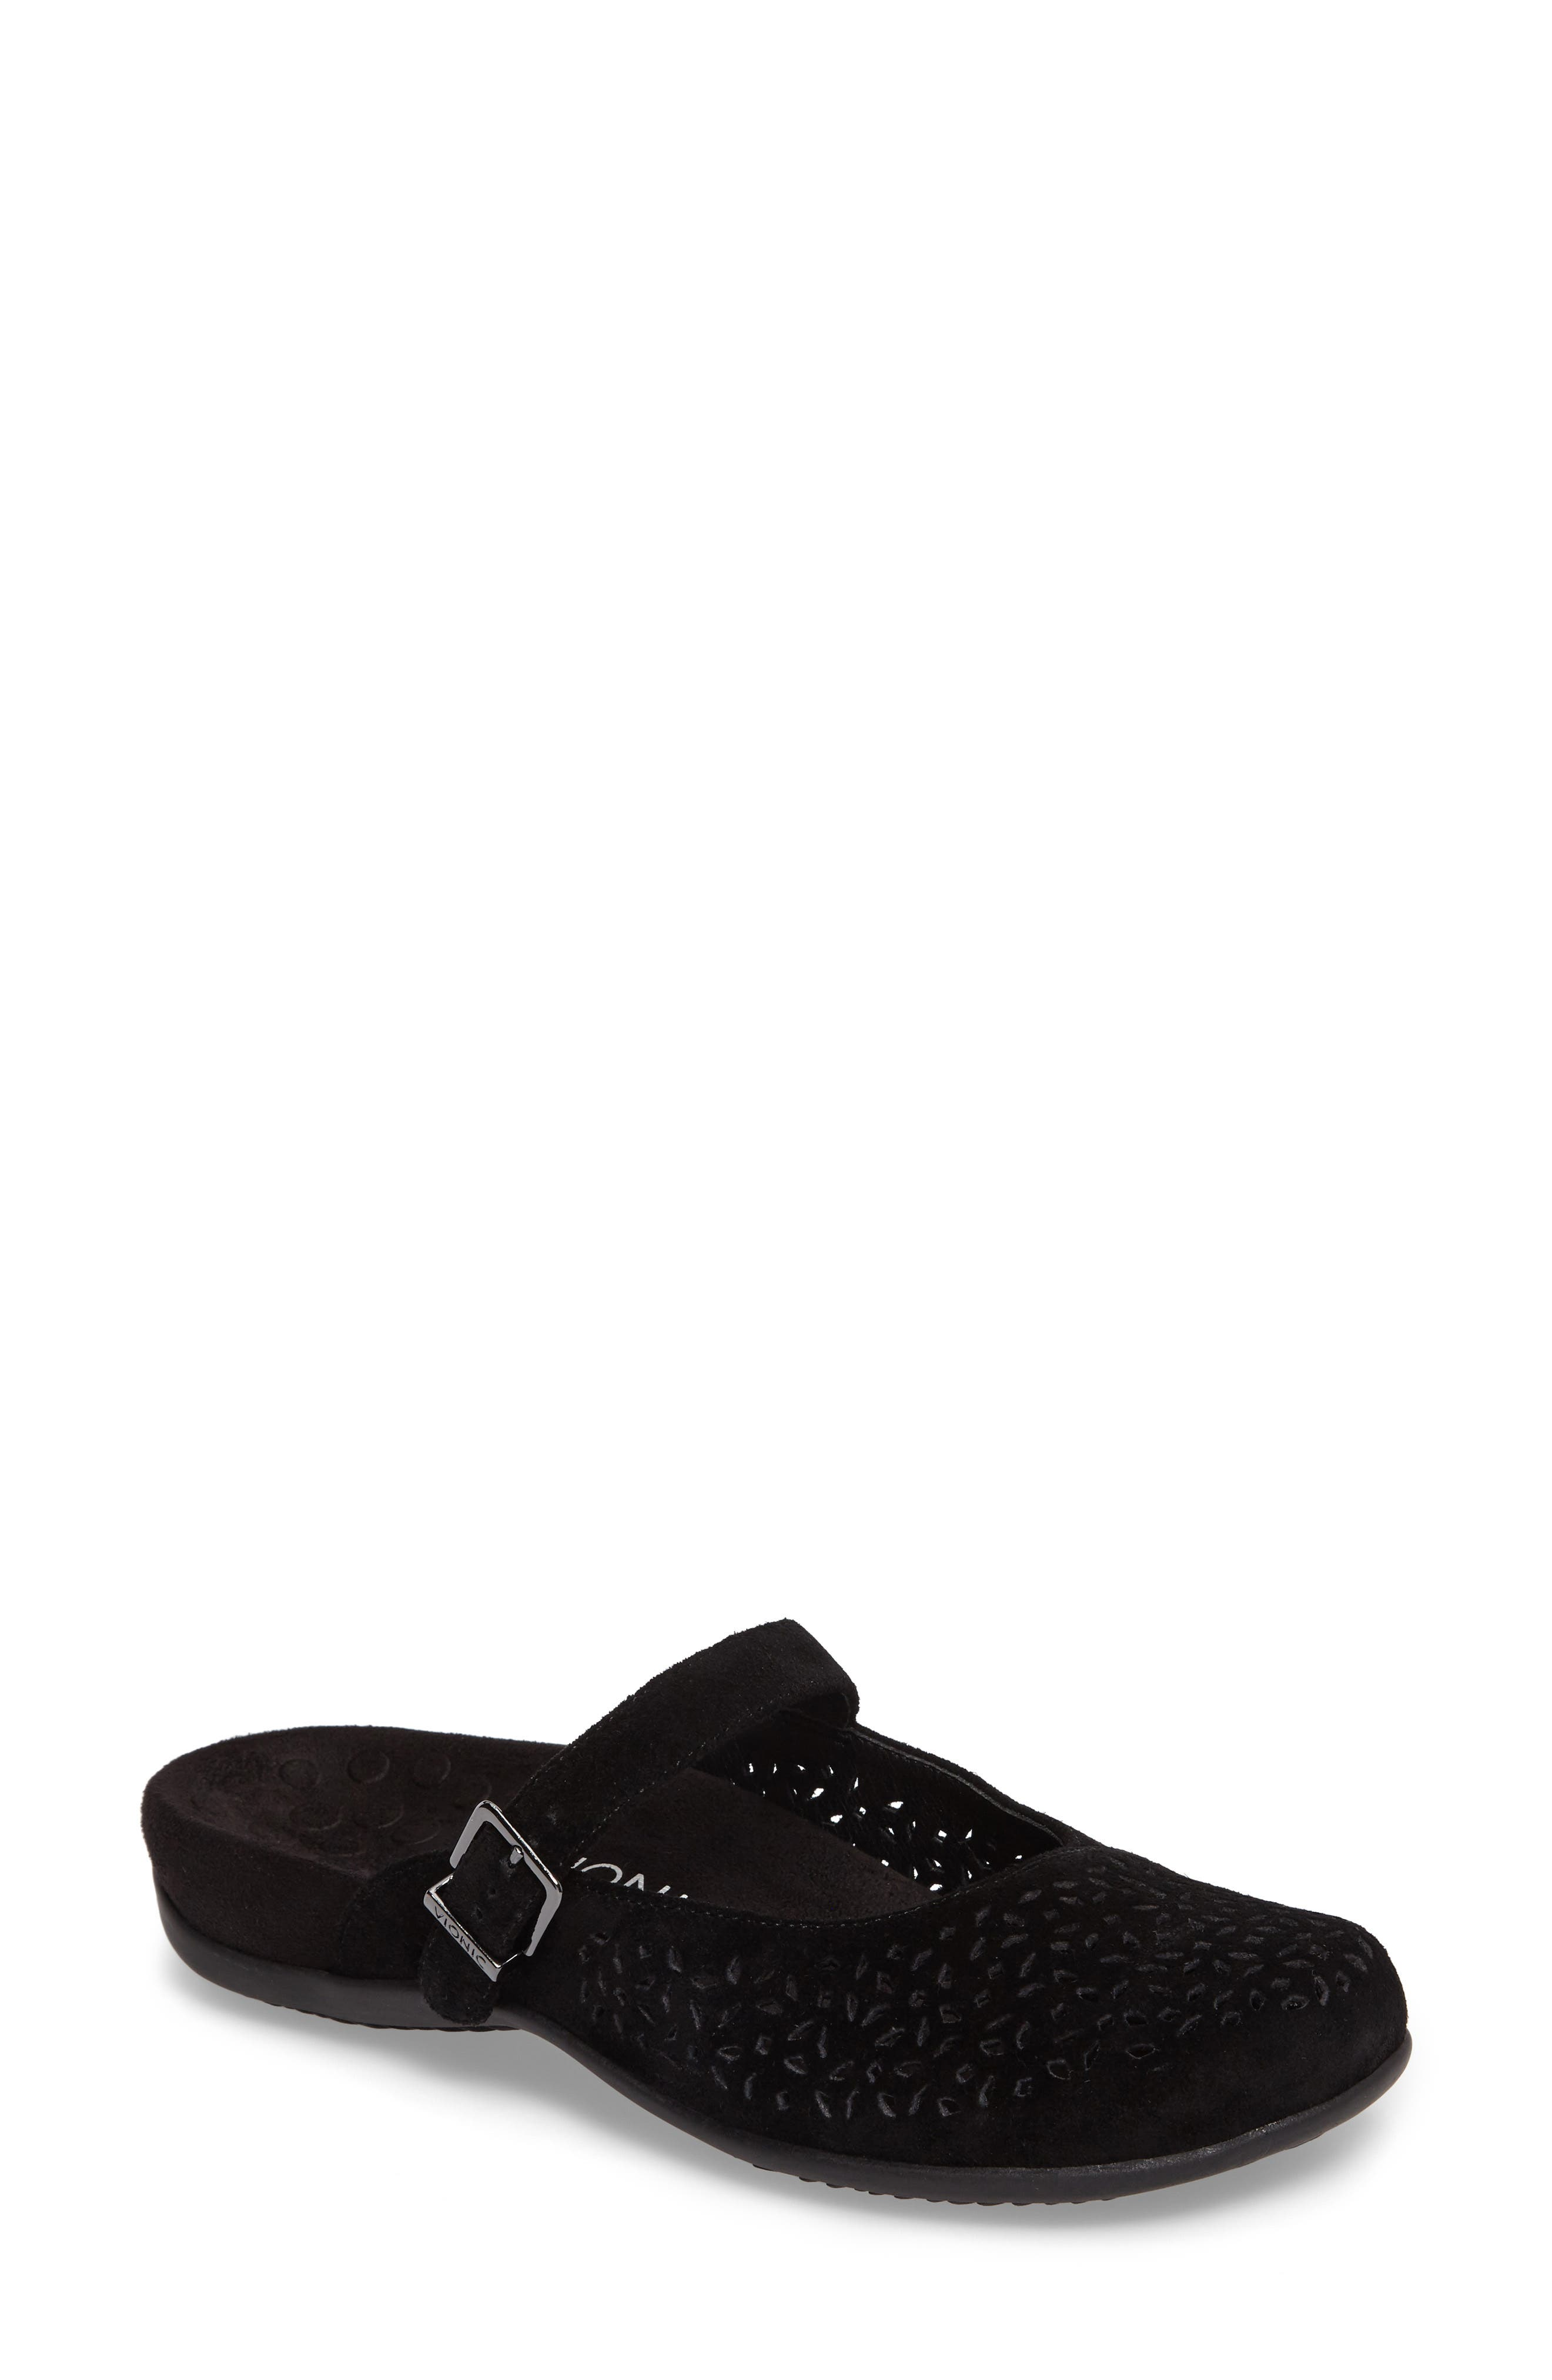 VIONIC Rest Lidia Perforated Mary Jane Mule, Main, color, BLACK SUEDE